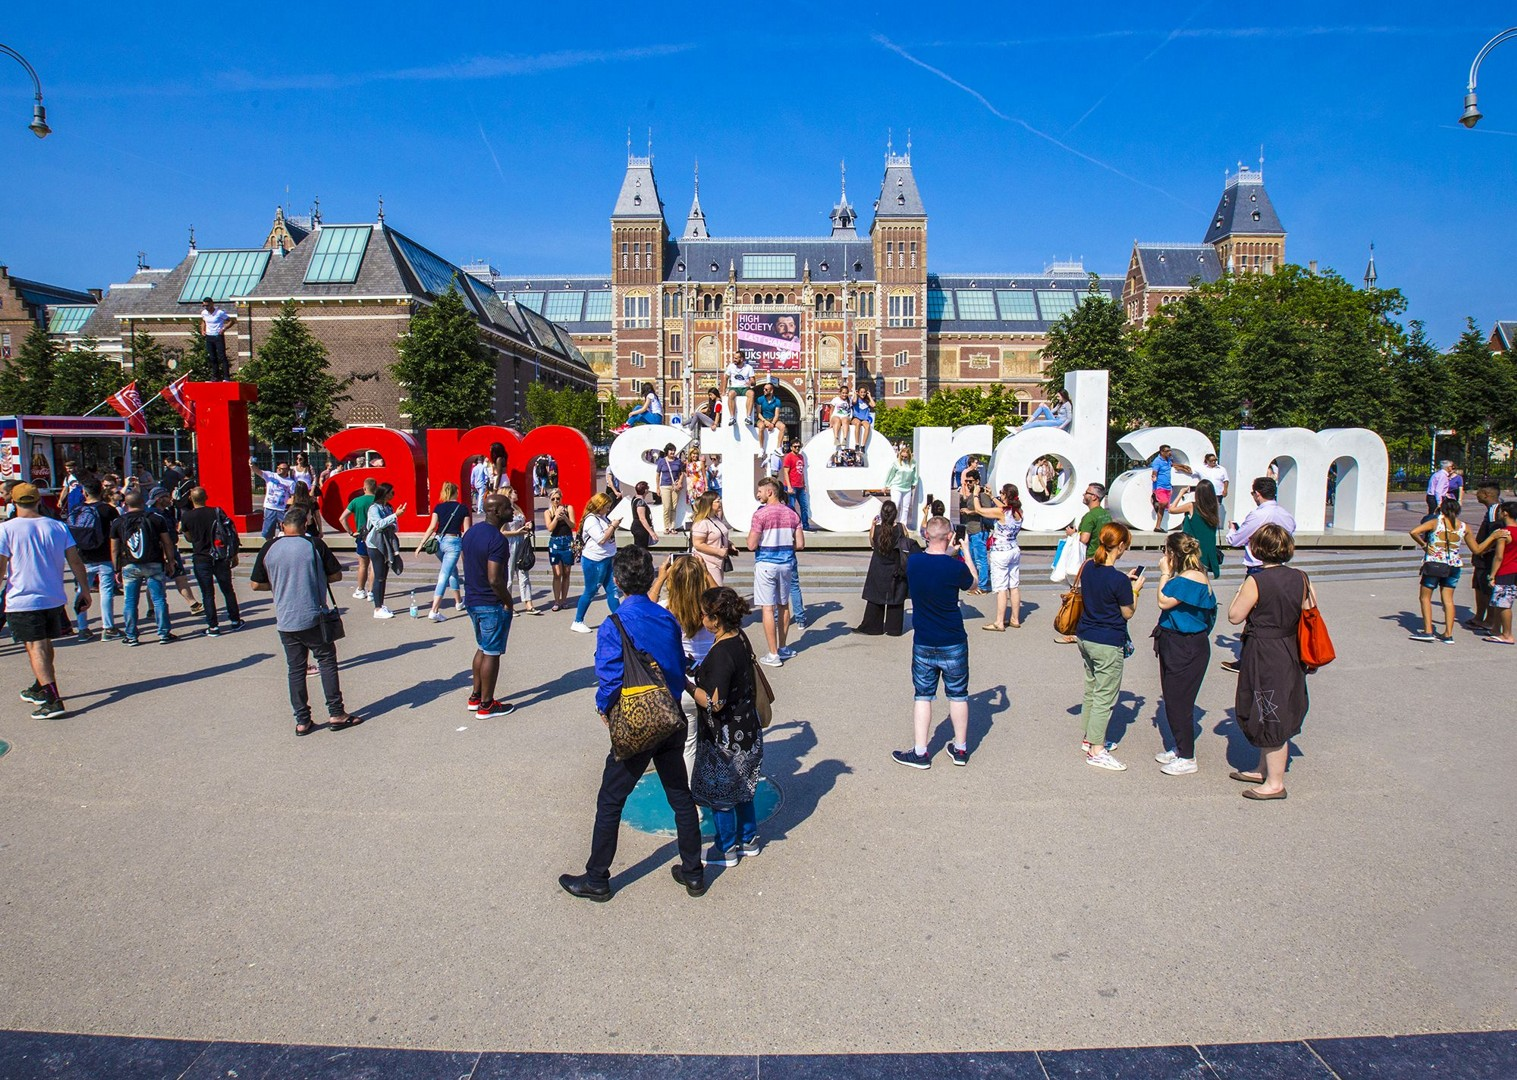 experience-amsterdam-culture-landmarks-bike-and-boat-skedaddle.jpg - Holland and Belgium - Amsterdam to Bruges - Bike and Barge Holiday - Leisure Cycling